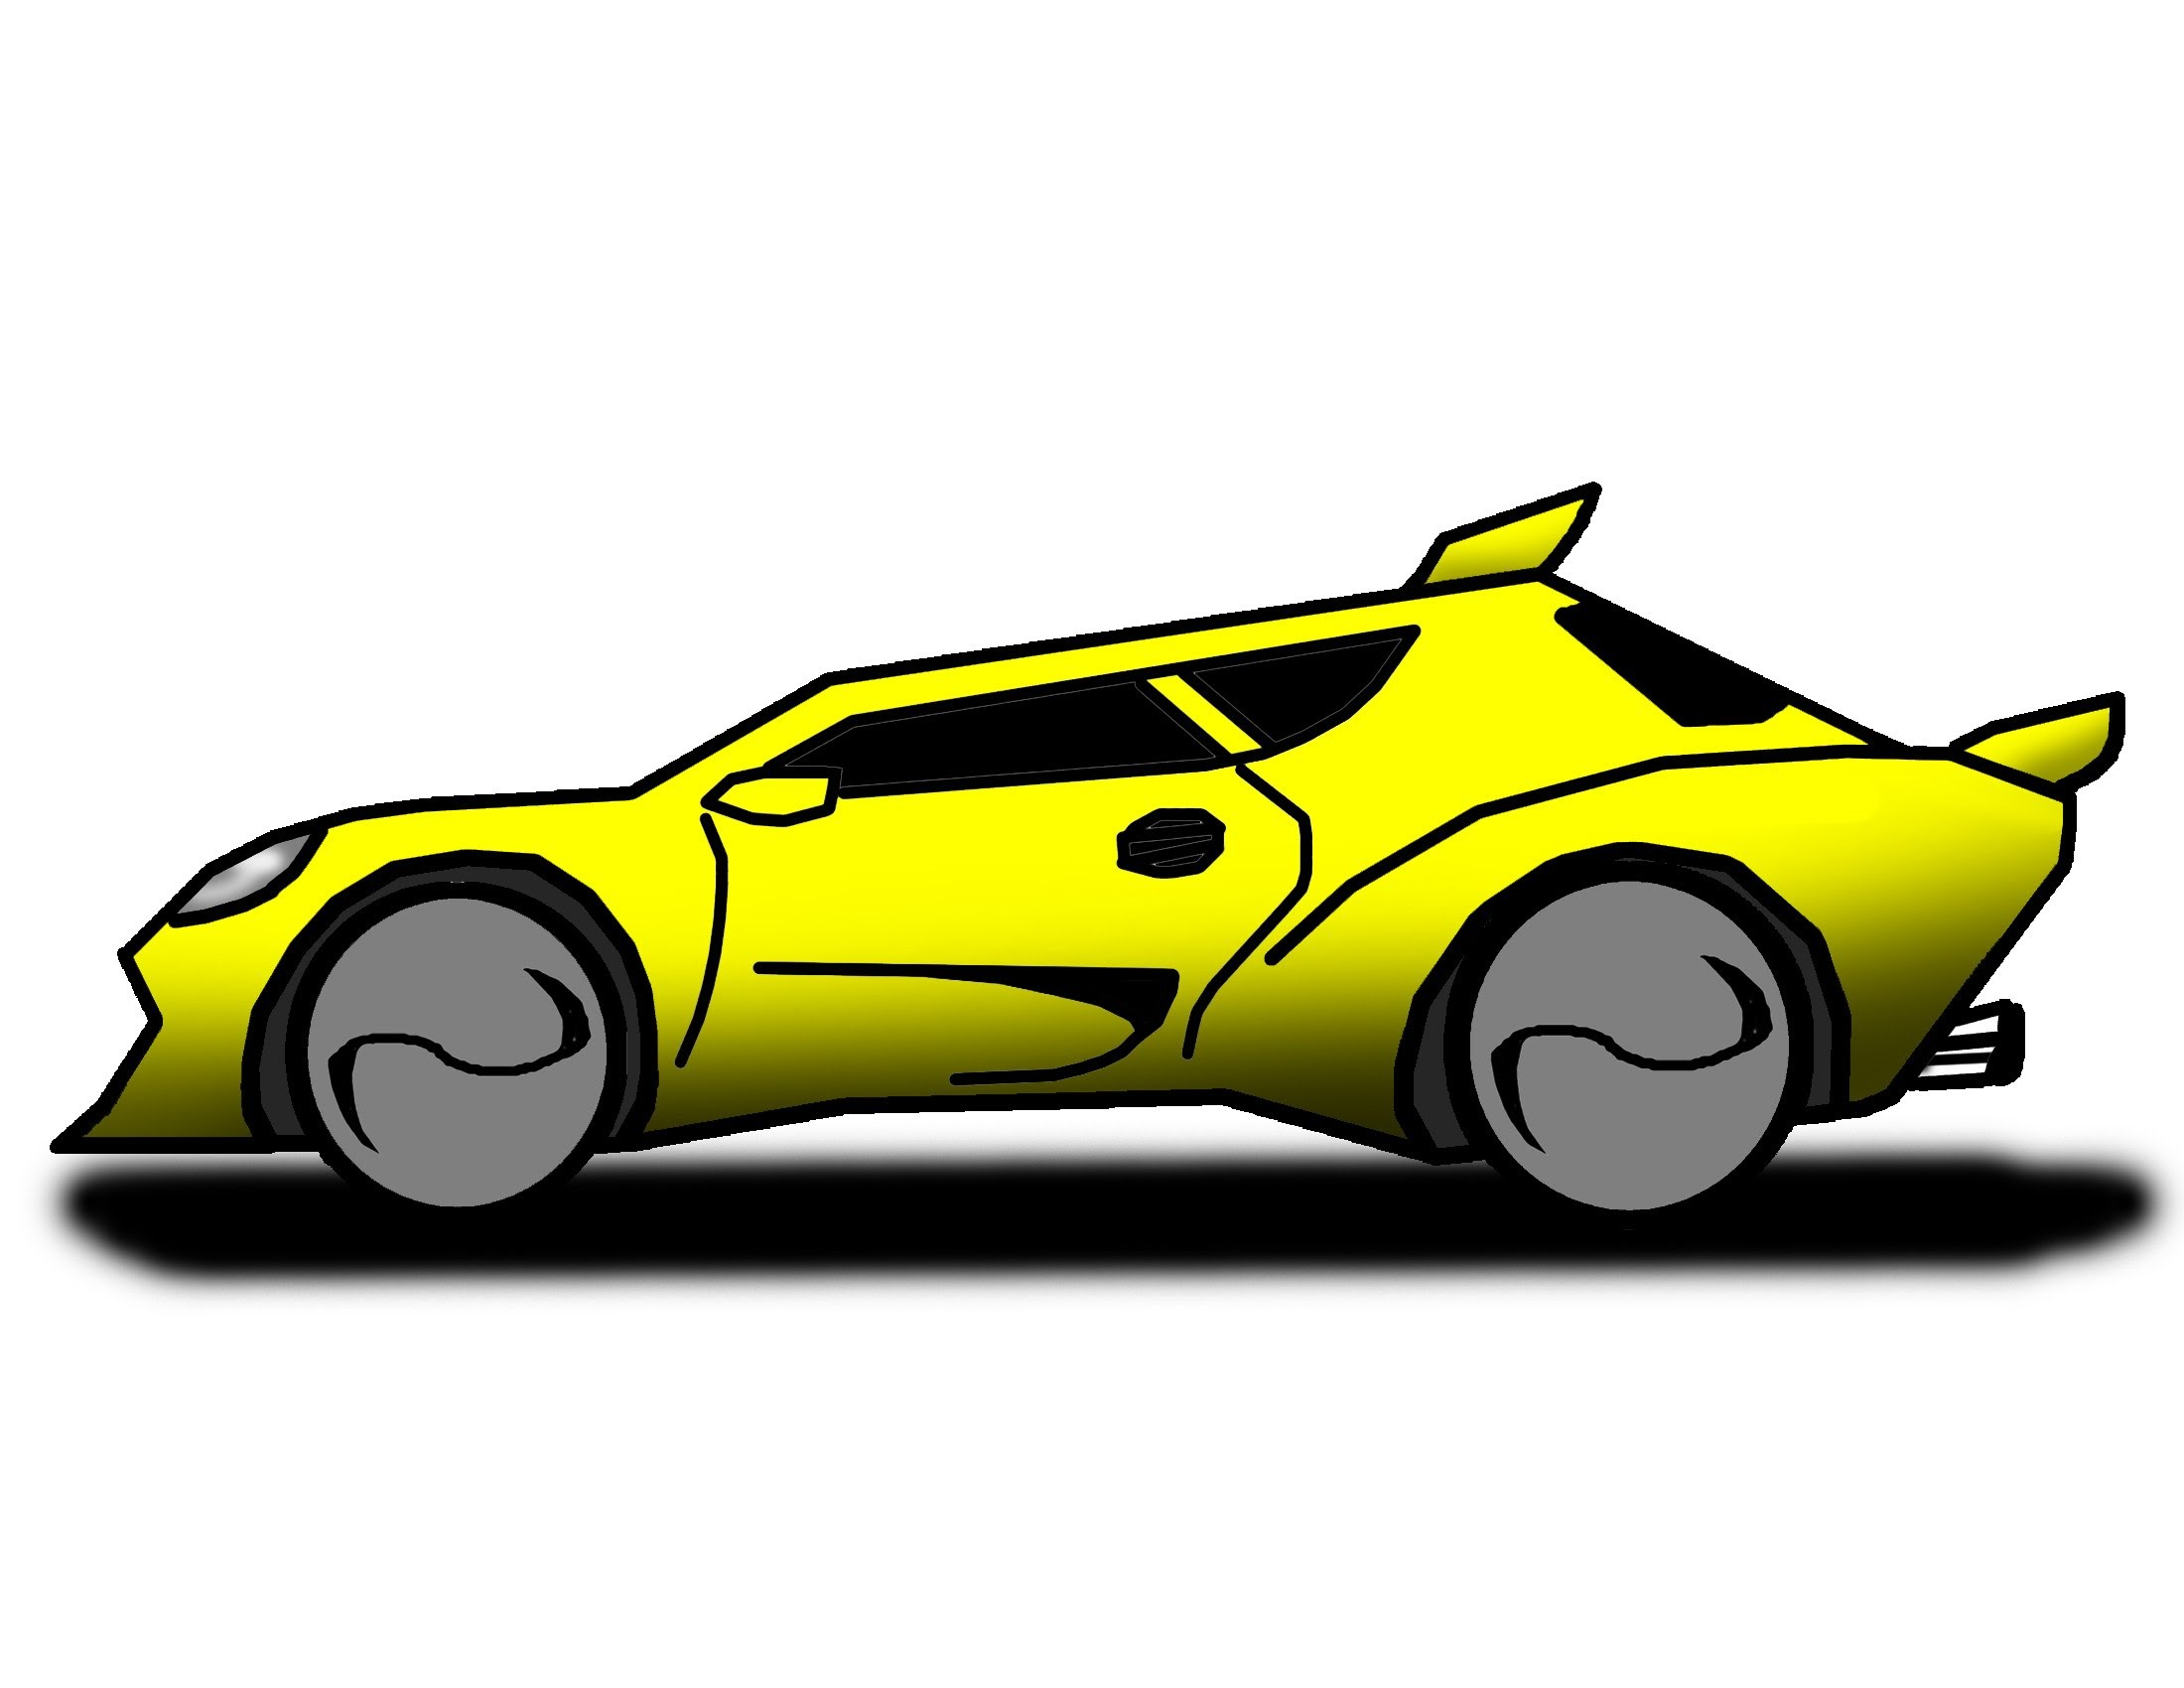 2200x1700 Car Picture Cartoon Image Group